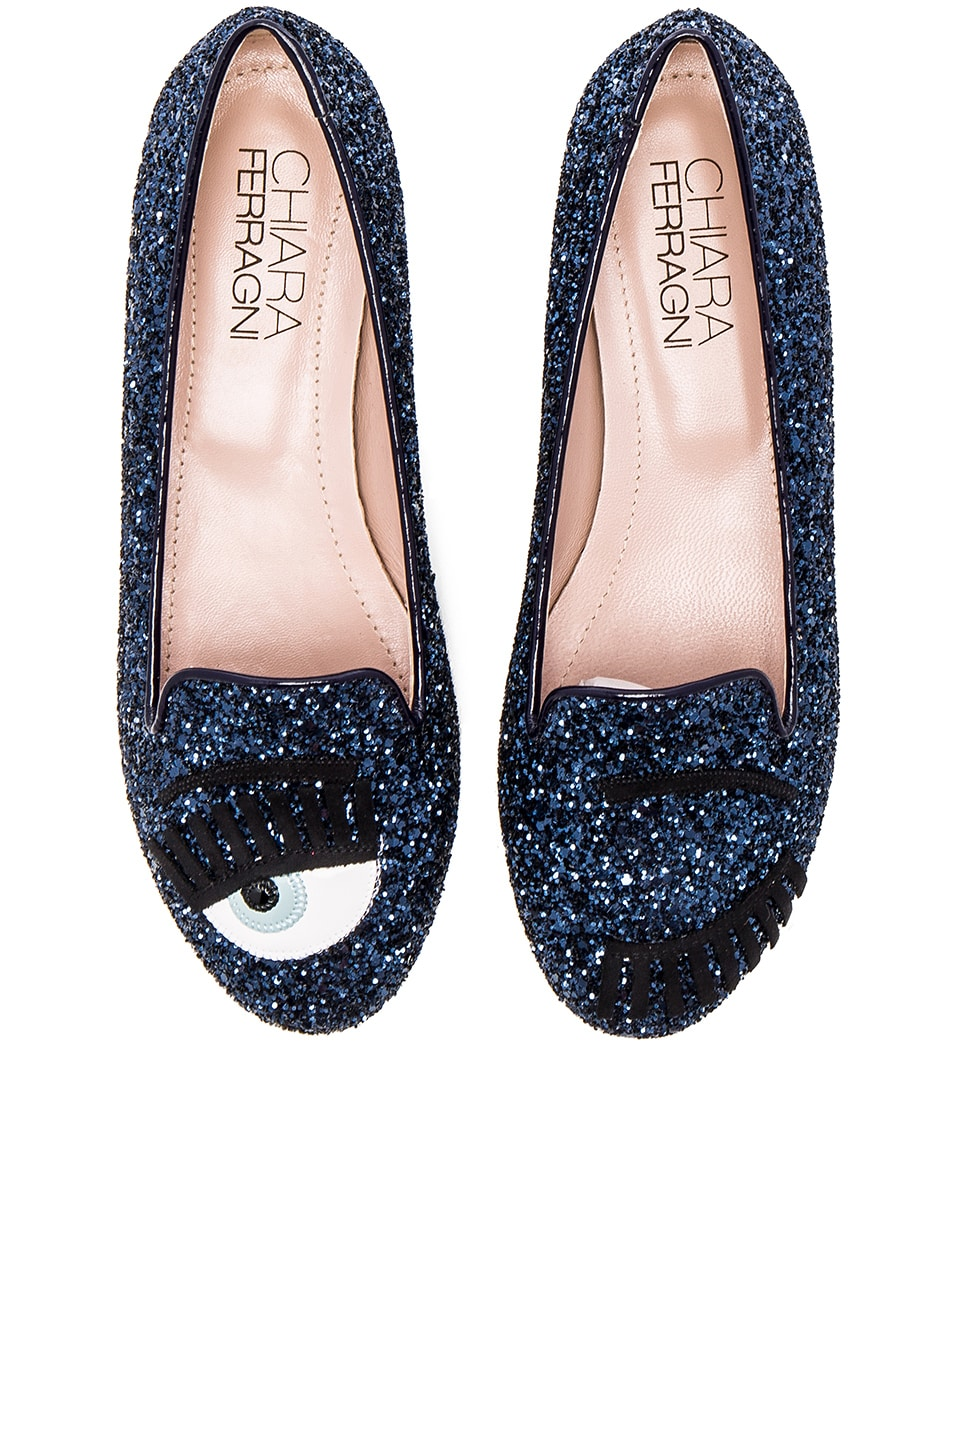 Chiara Ferragni Flirting Flat in Blue